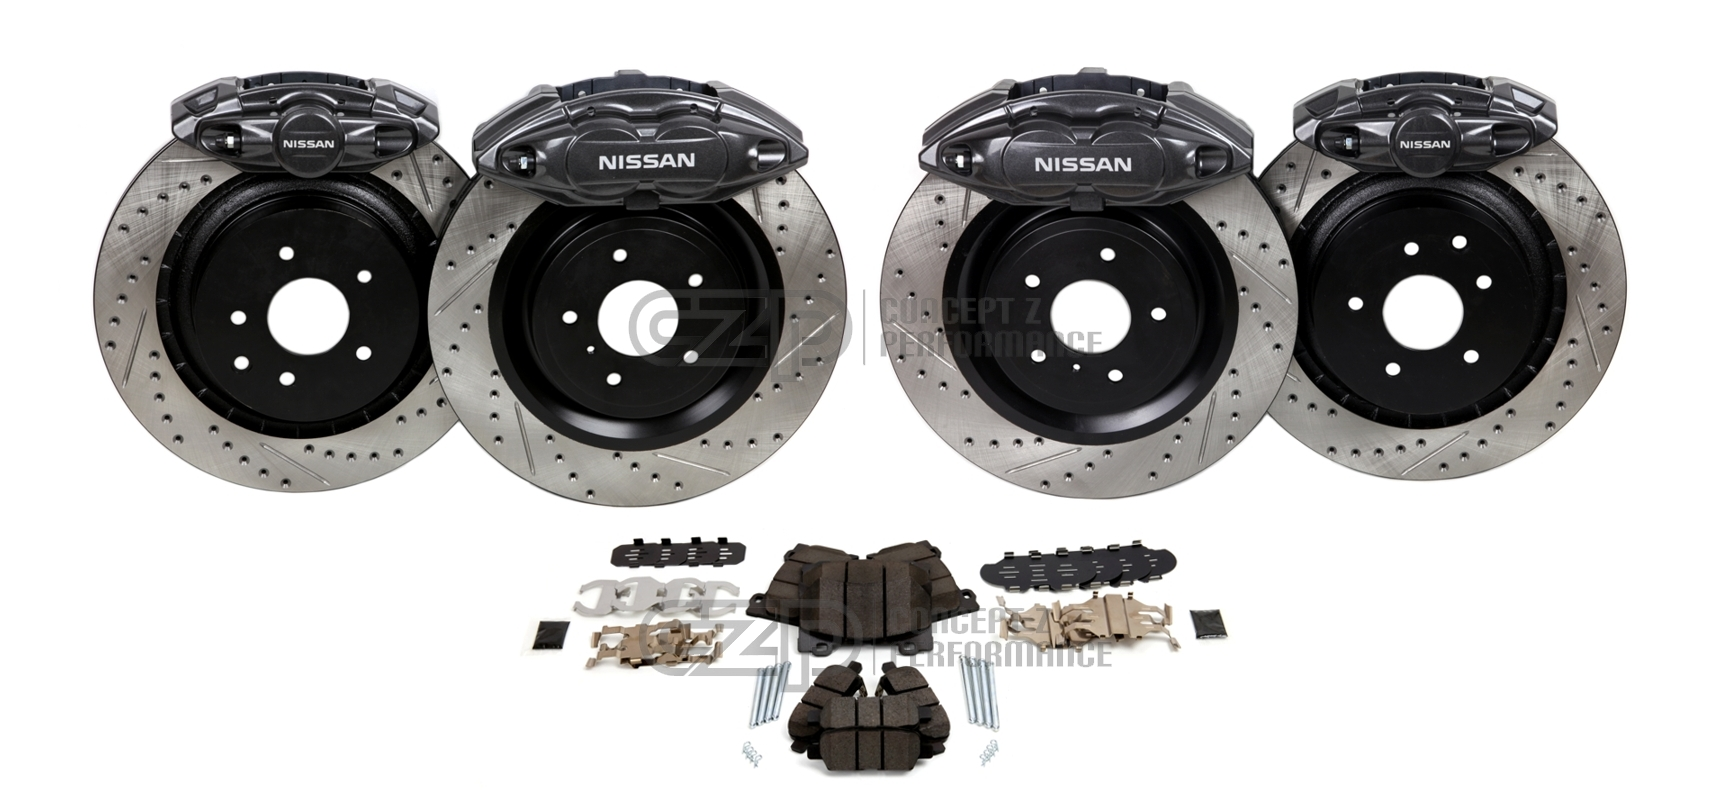 Ceramic Pads for 2007-2015 Infiniti G35 G37 Q60 Front Drilled Brake Rotors